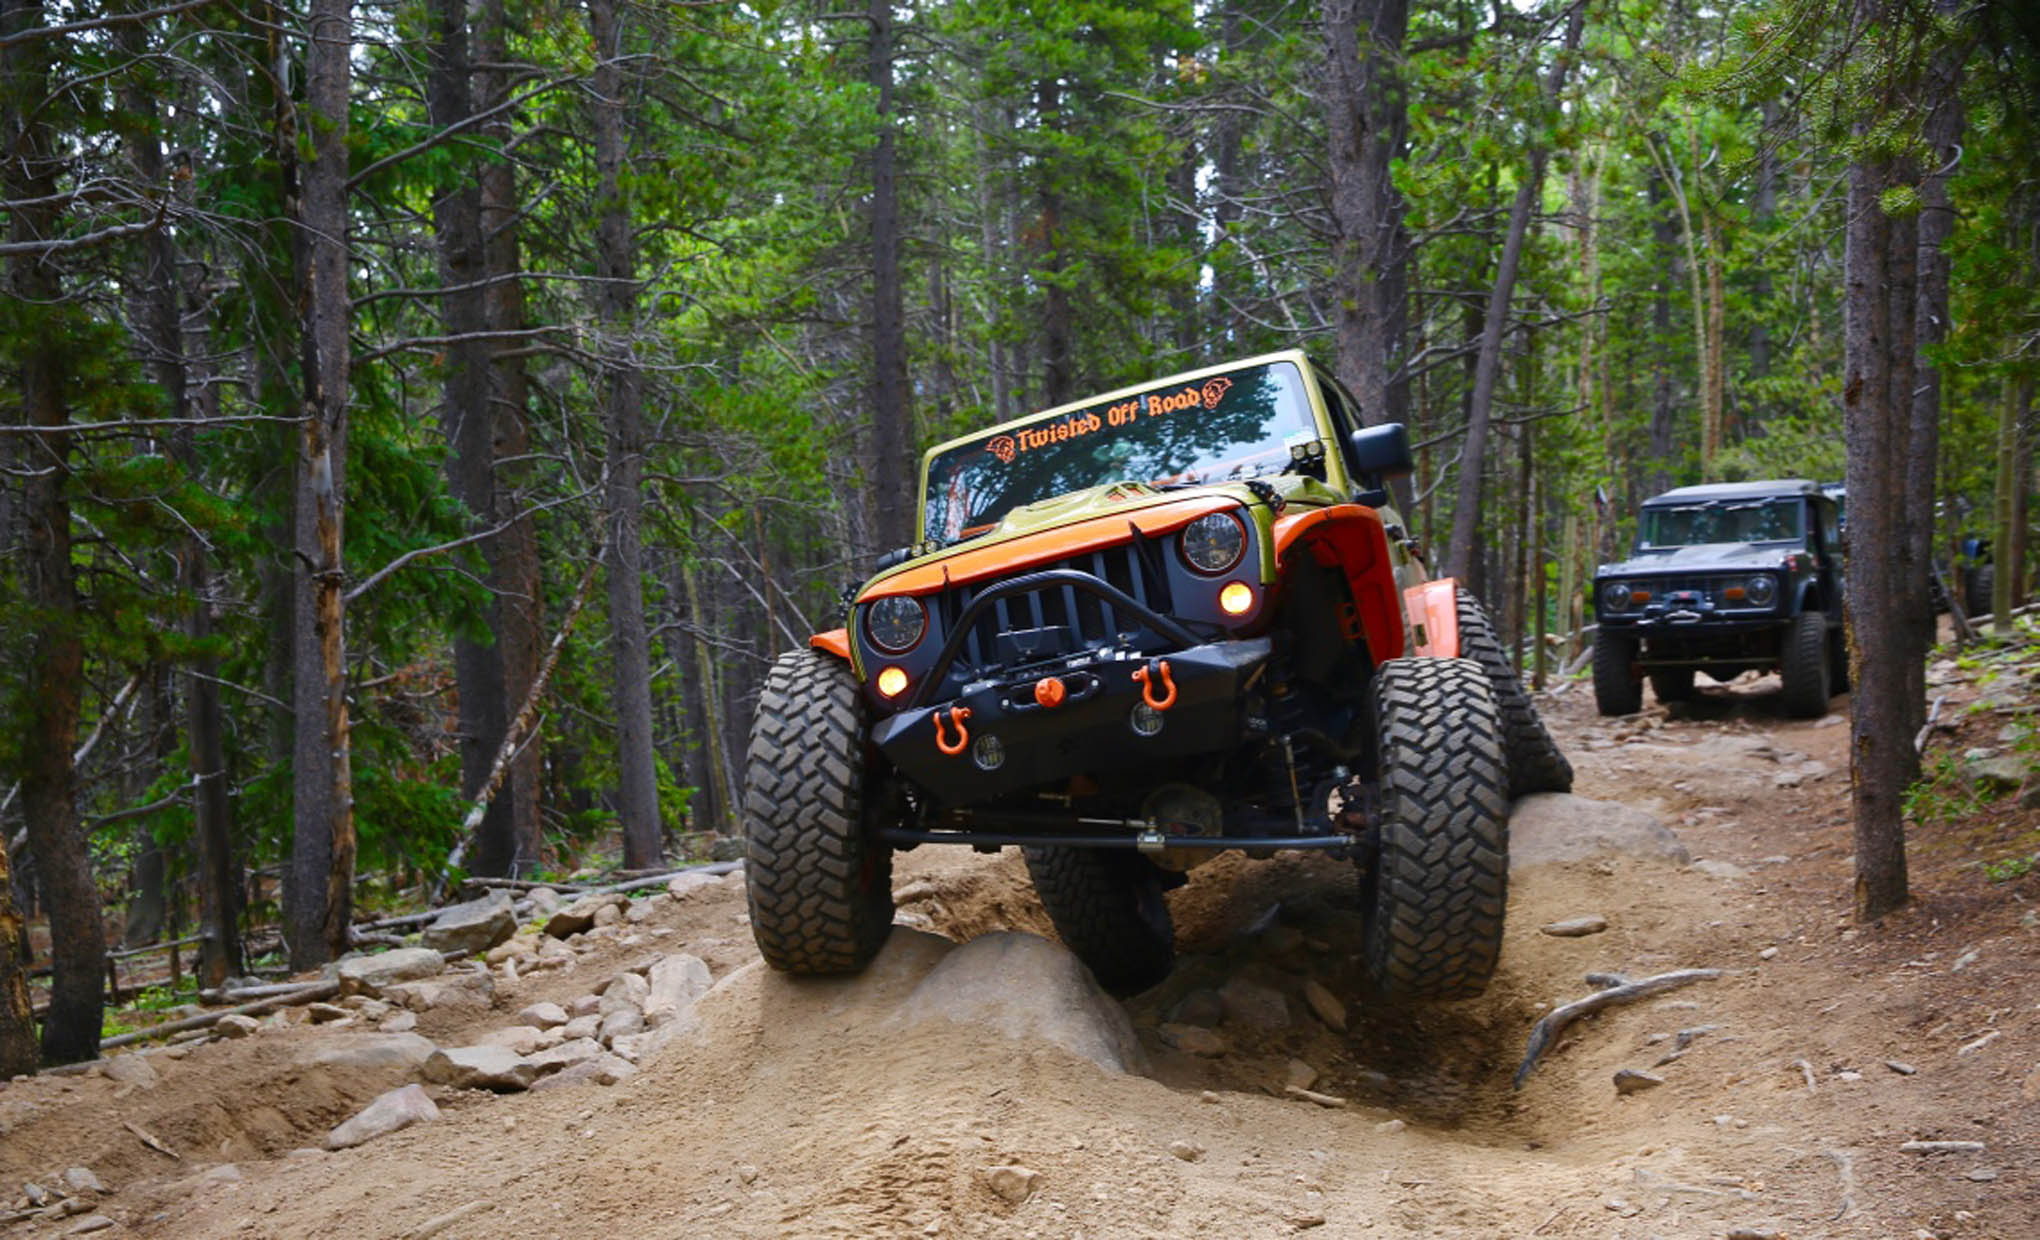 Joey Brouchard of Twisted Off Road muscles his way up Red Elephant in his built Rubicon.